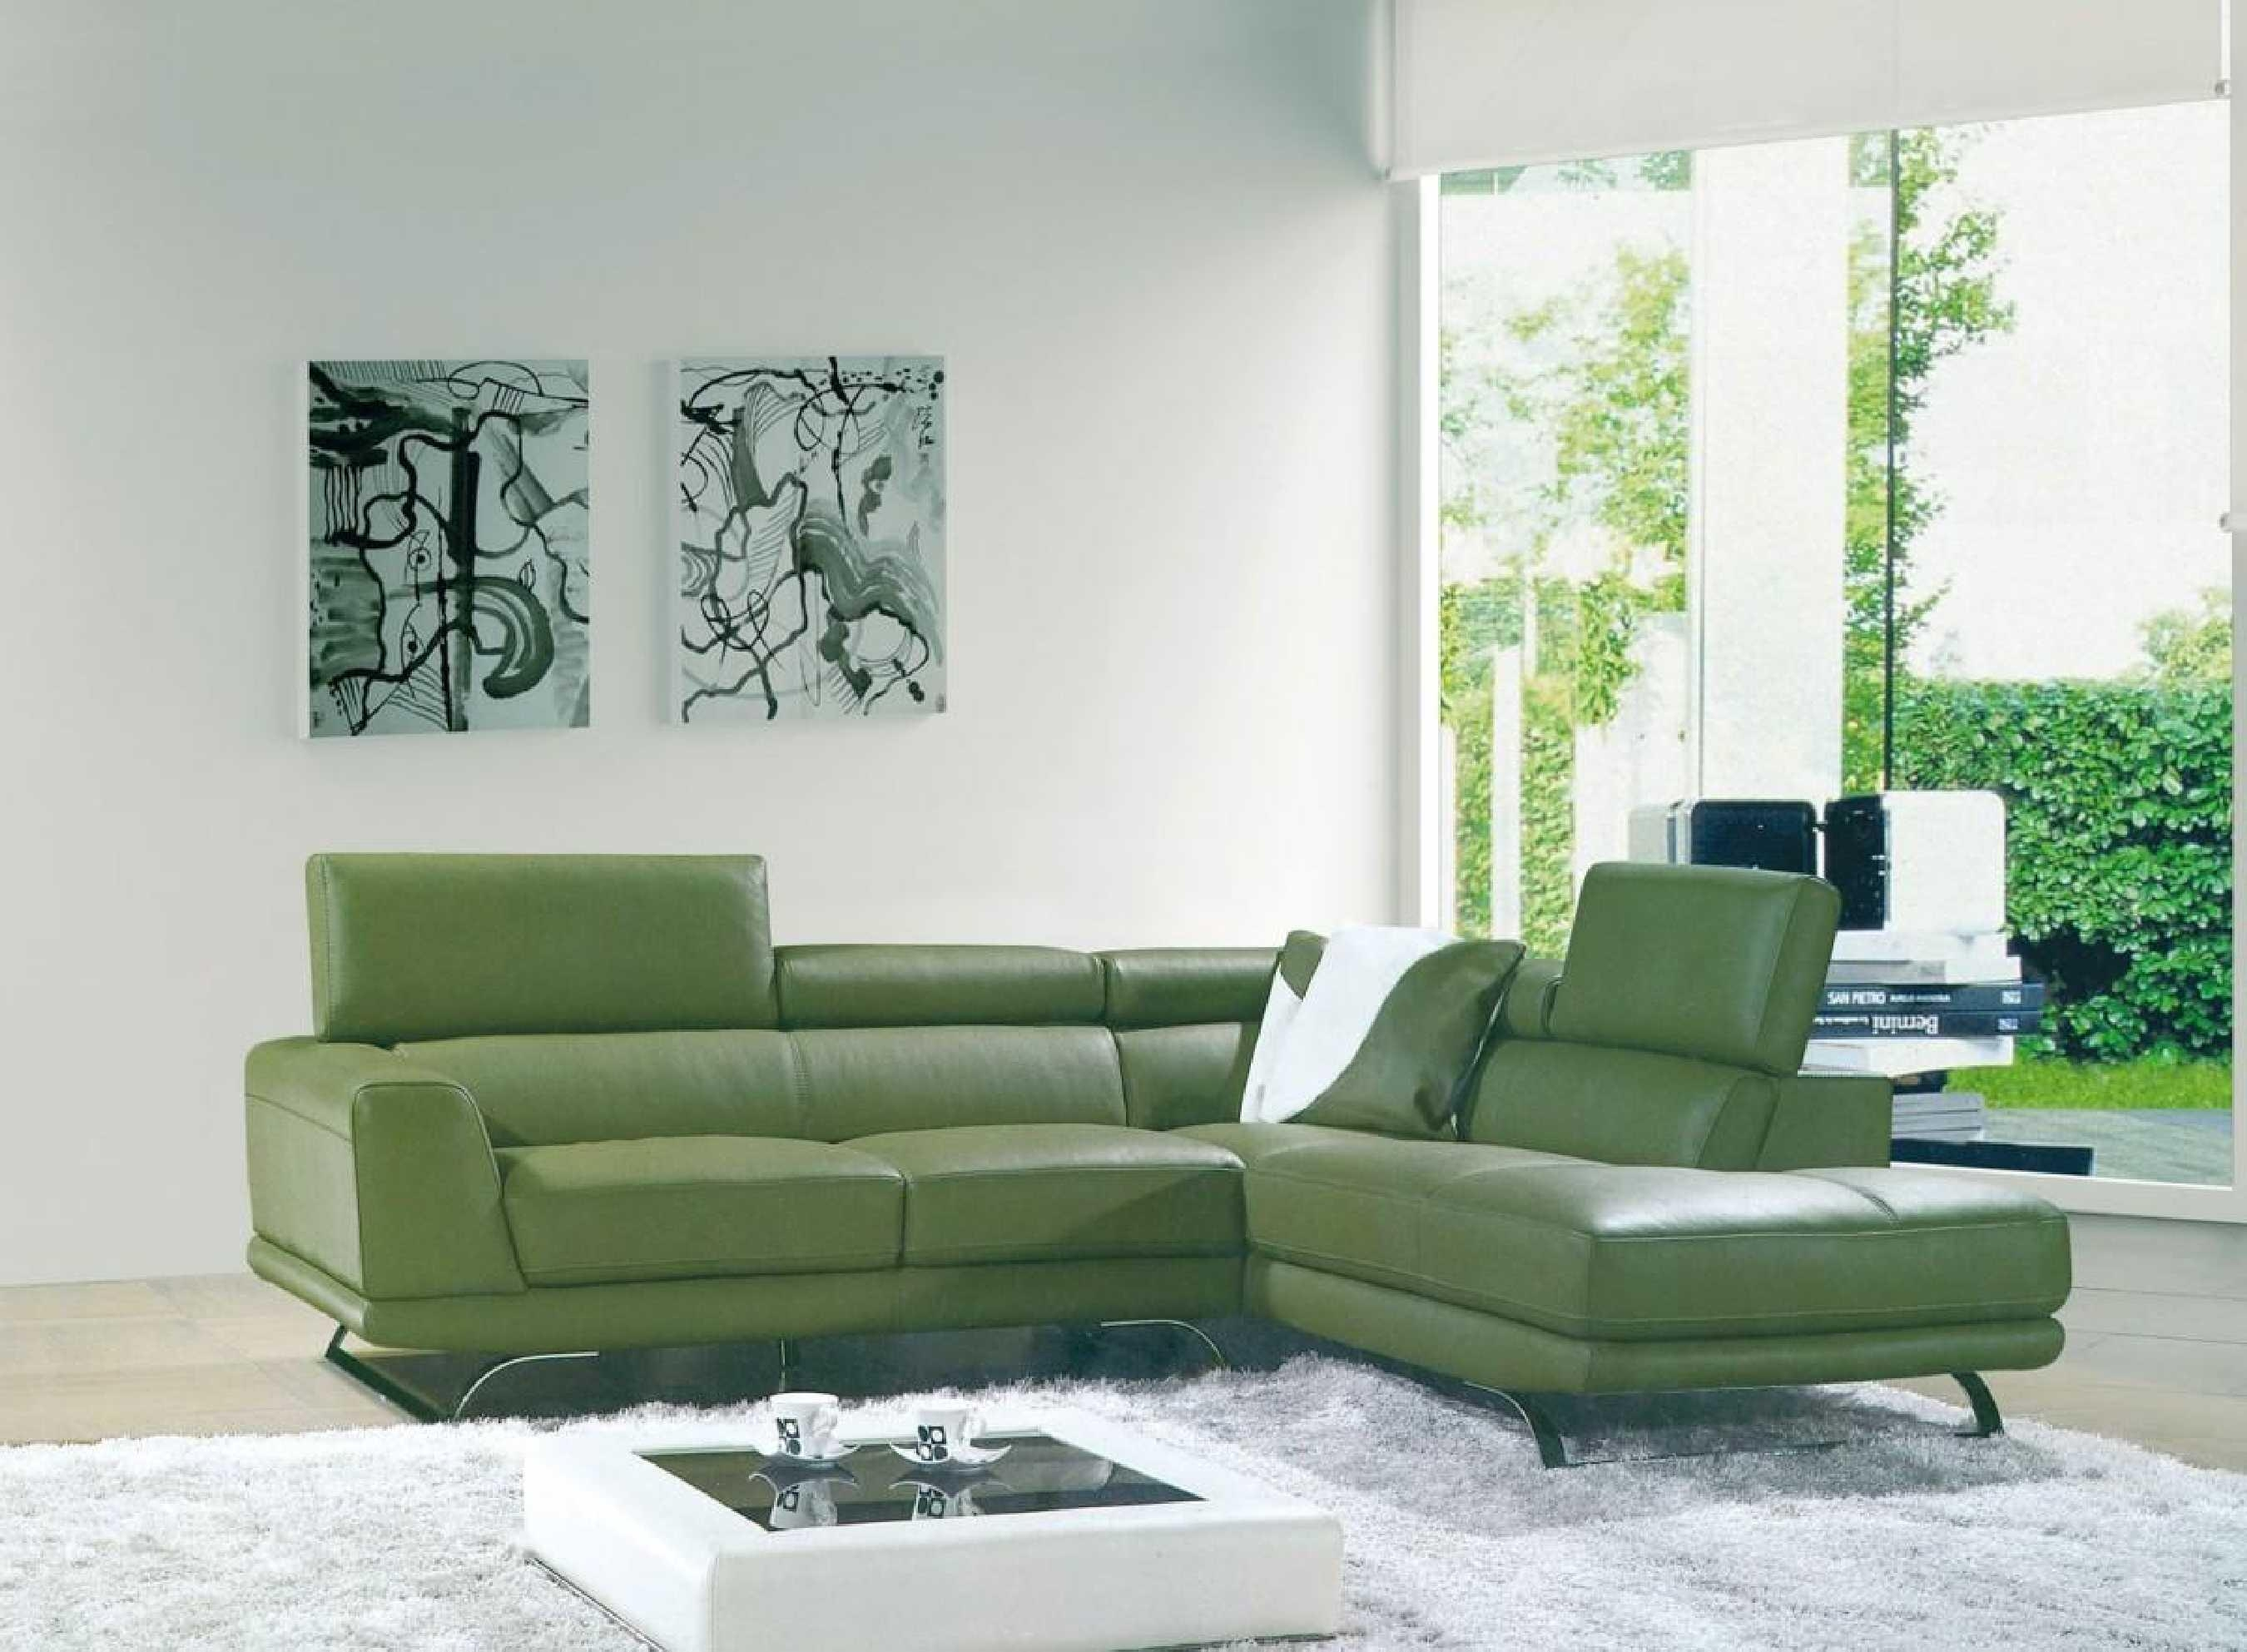 2017 16 Green Leather Sofa On Vig Furniture 8012 Green Bonded Inside Green Leather Sectional Sofas (View 14 of 20)